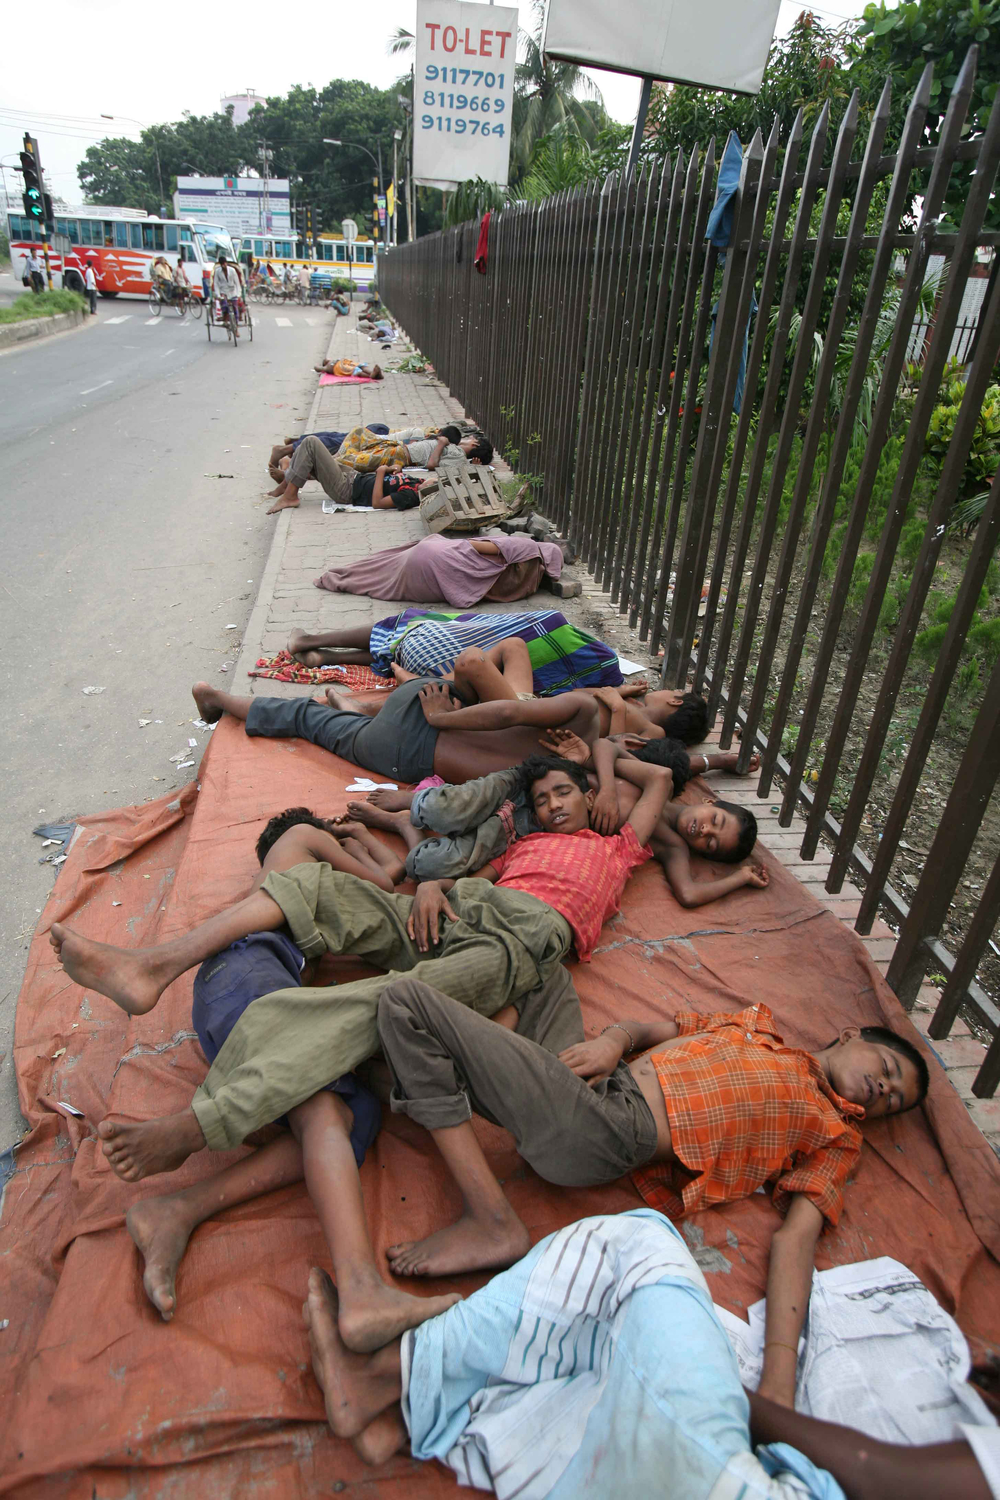 Street children sleep on the path of one of Dhaka's roads, Bangladesh, July 2007. The country is one of the poorest in the world. A large percentage of the population is young and living below the poverty level.